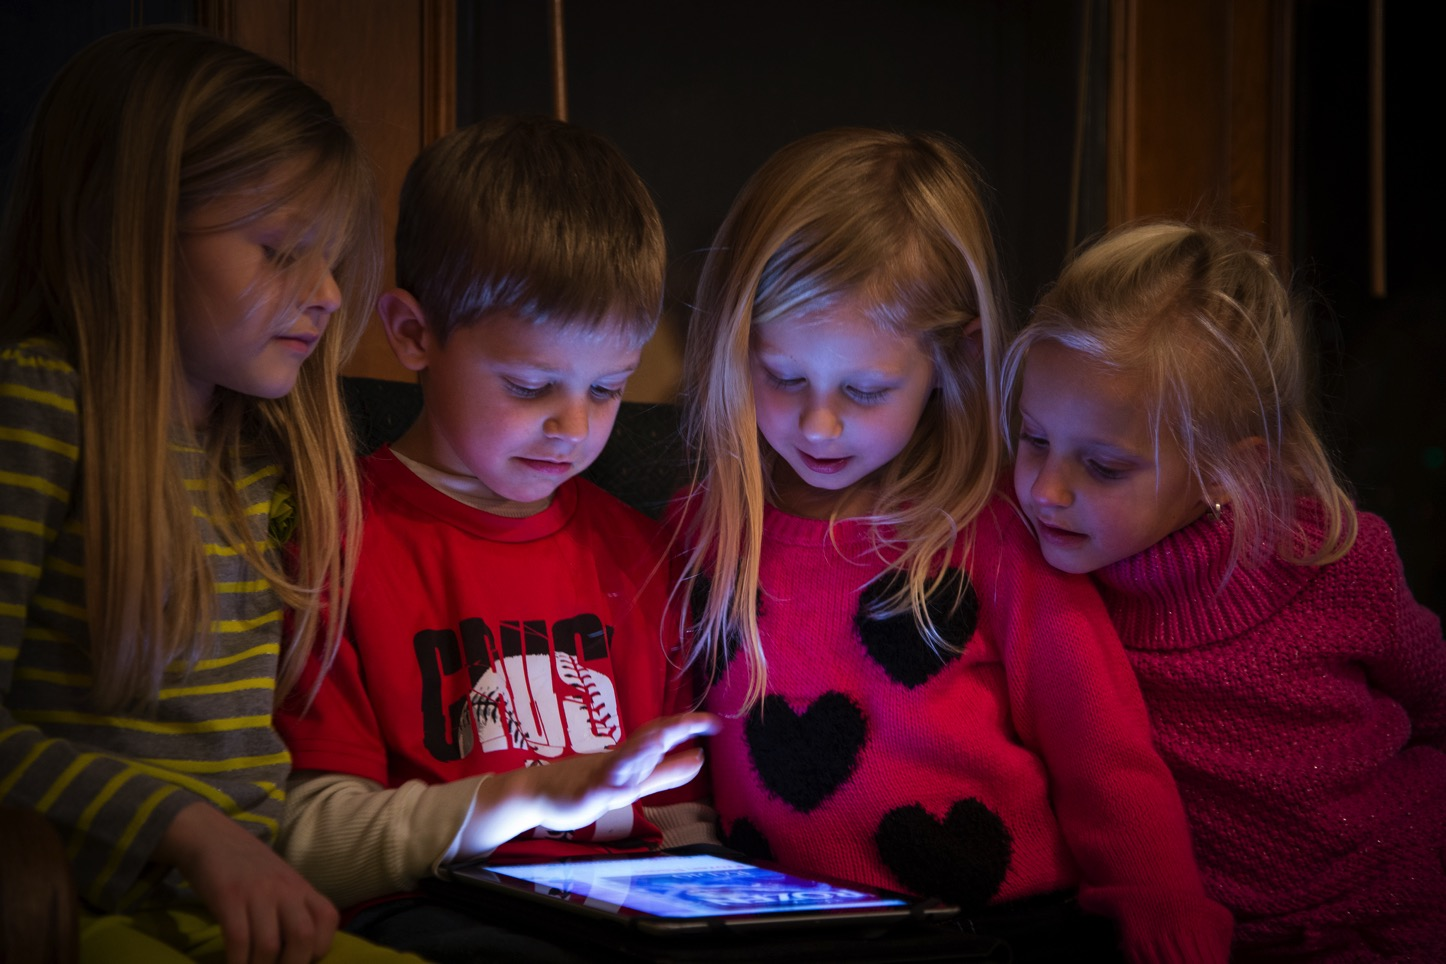 Kids-Using-iPads.jpg